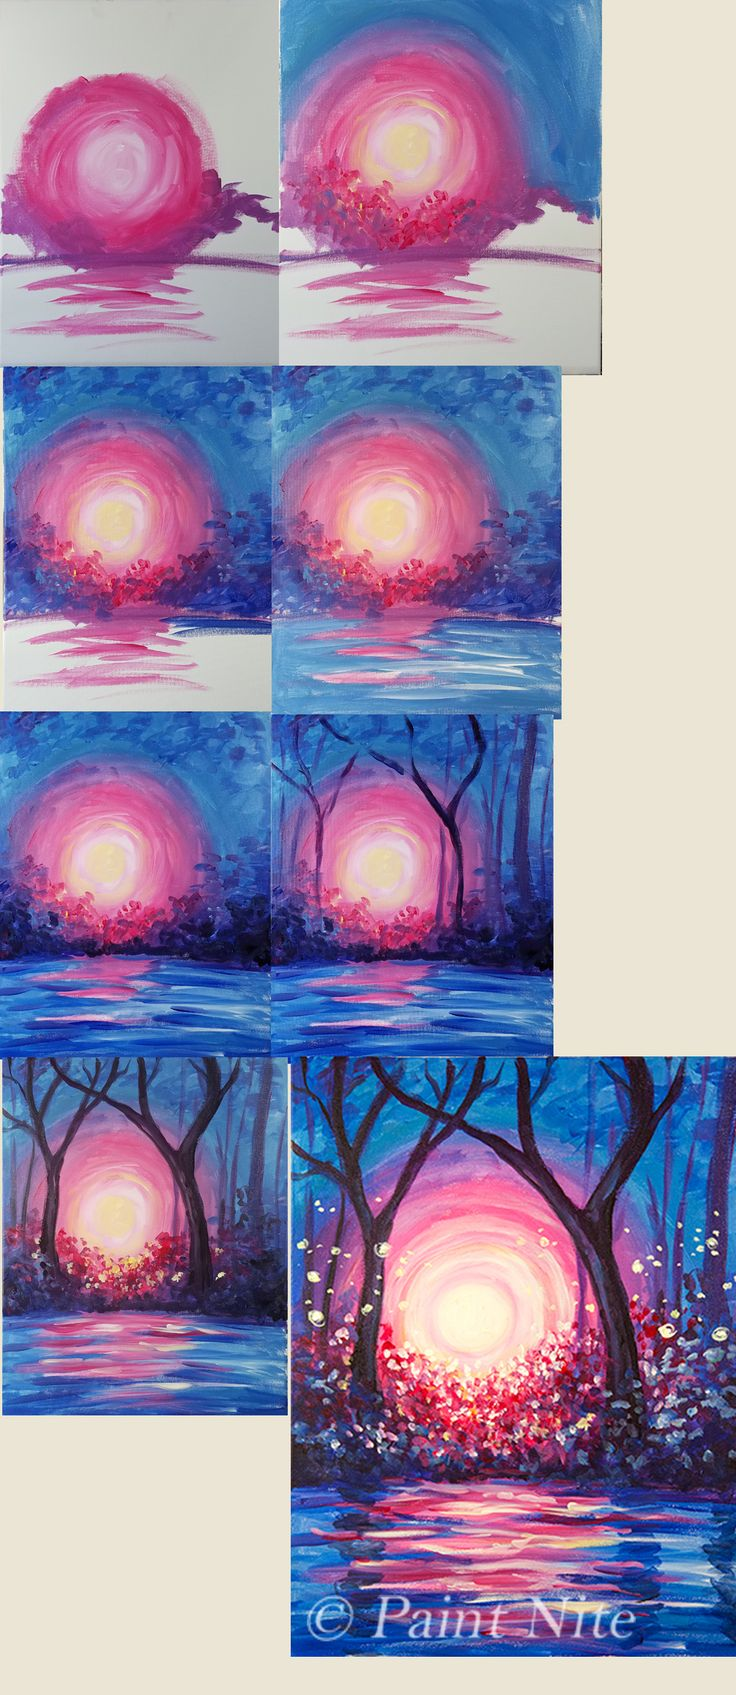 Dance of Light, beginner painting idea pink sunset blue sky and trees, paint nite.